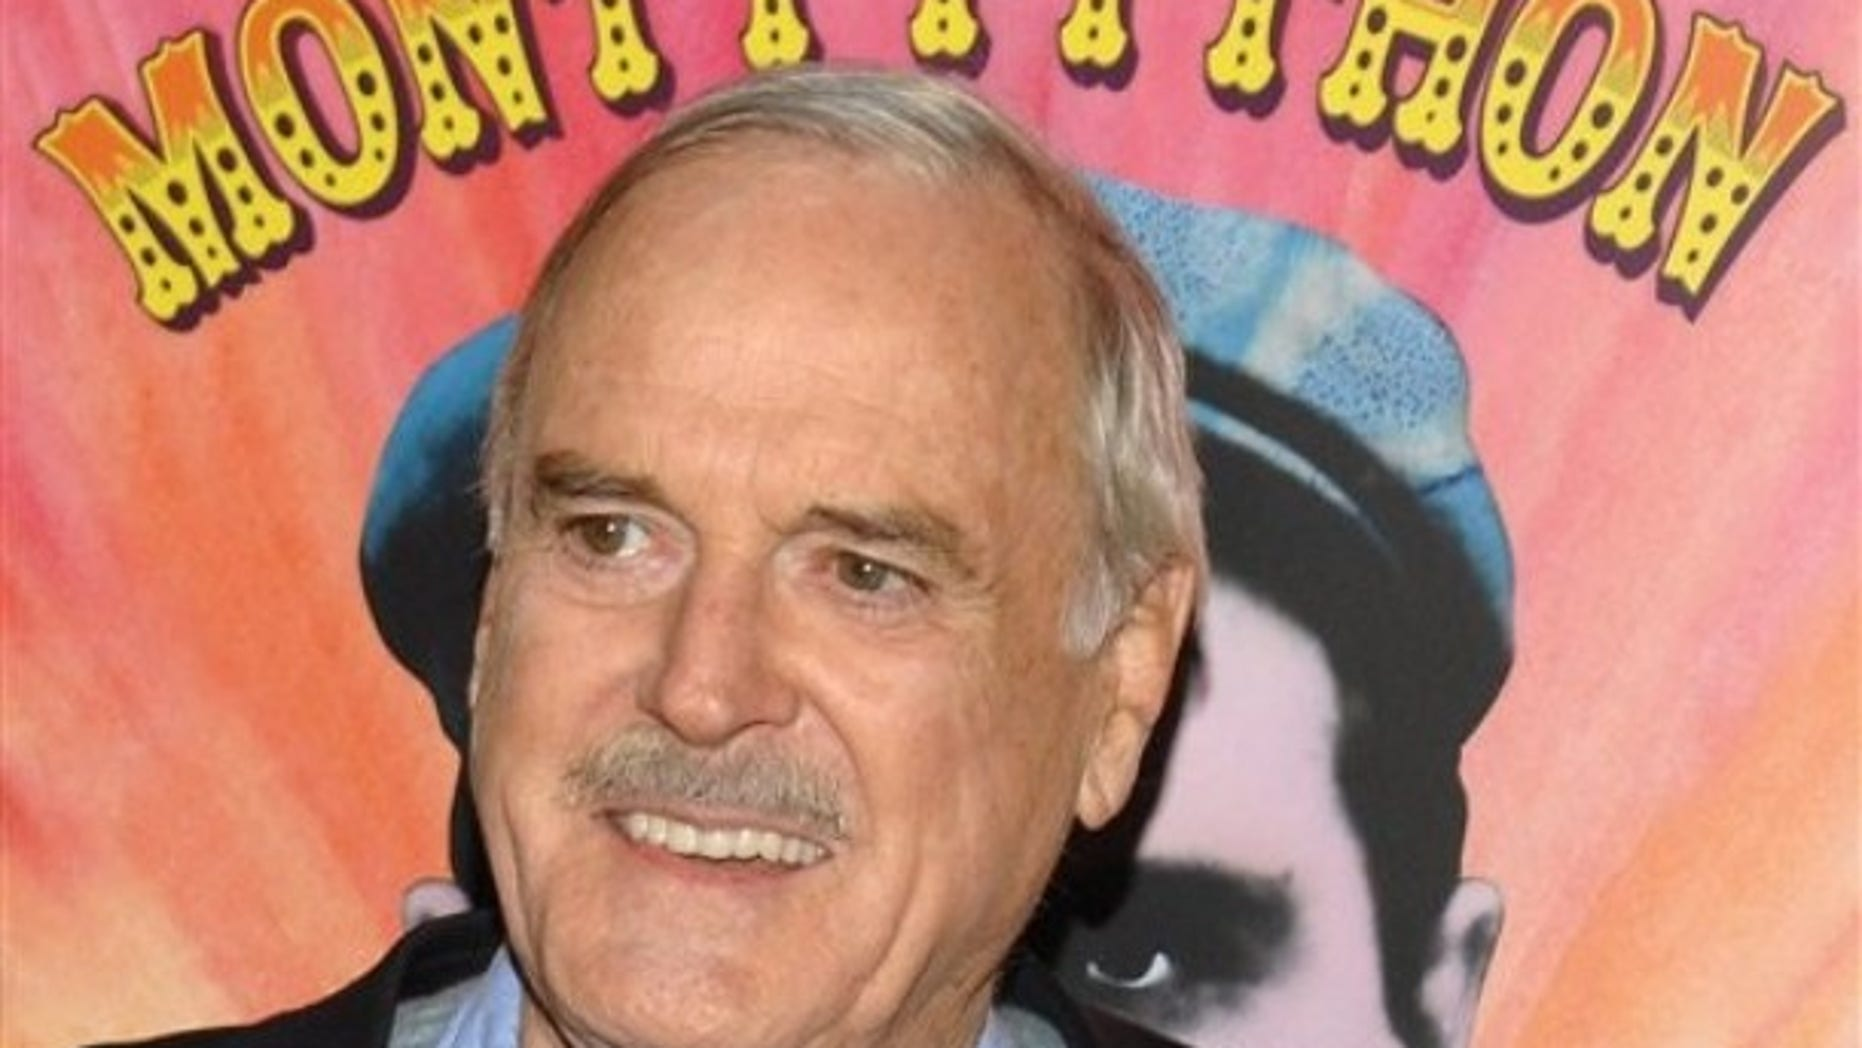 """Actor John Cleese attends the IFC and BAFTA premiere of """"Monty Python: Almost The Truth (The Lawyers Cut)"""", in New York, on Thursday, Oct. 15, 2009. (AP Photo/Peter Kramer)"""